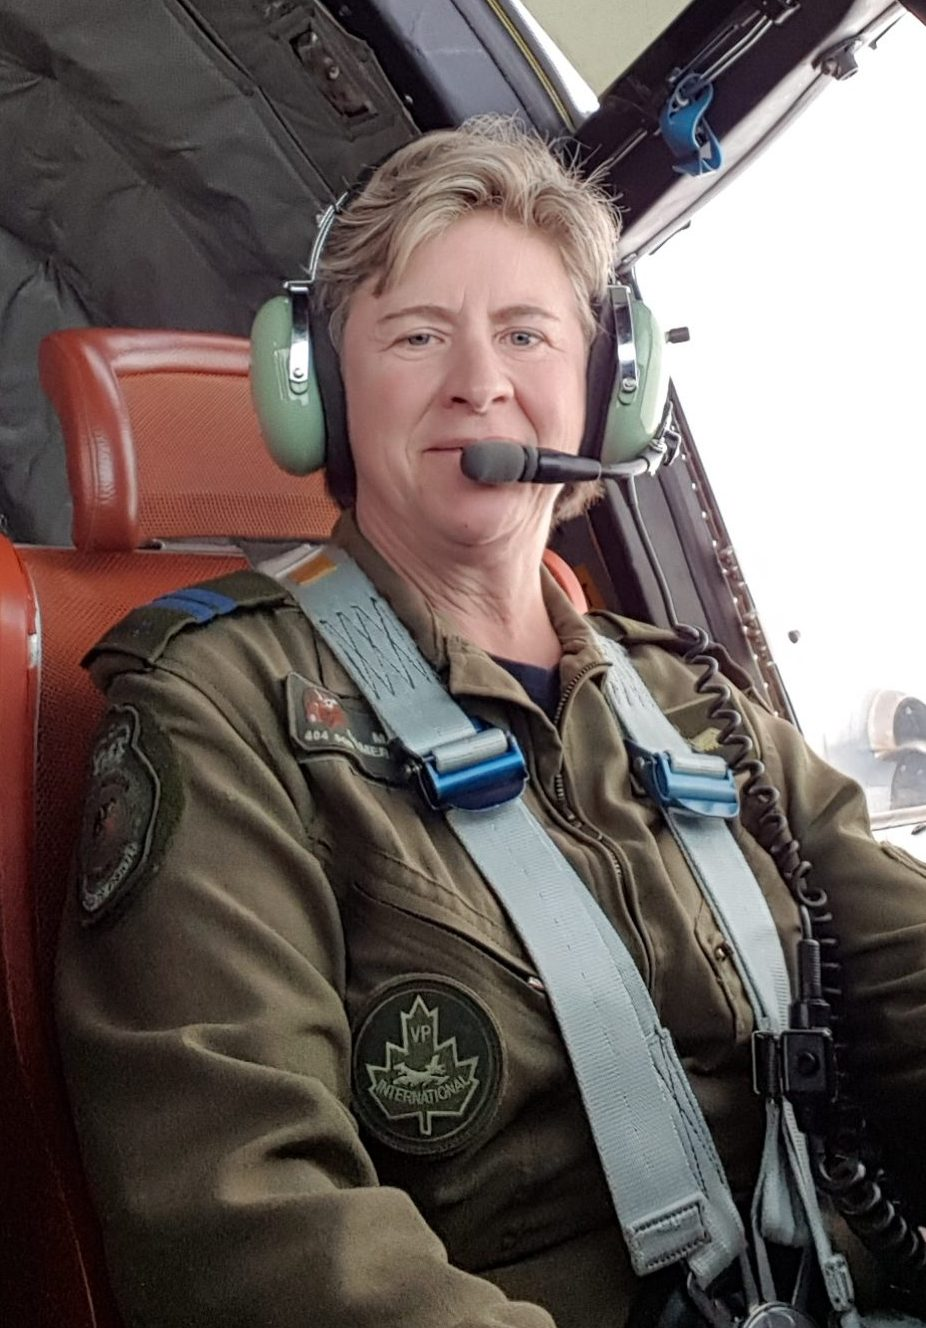 Capt Mary Cameron-Kelly Profile Image